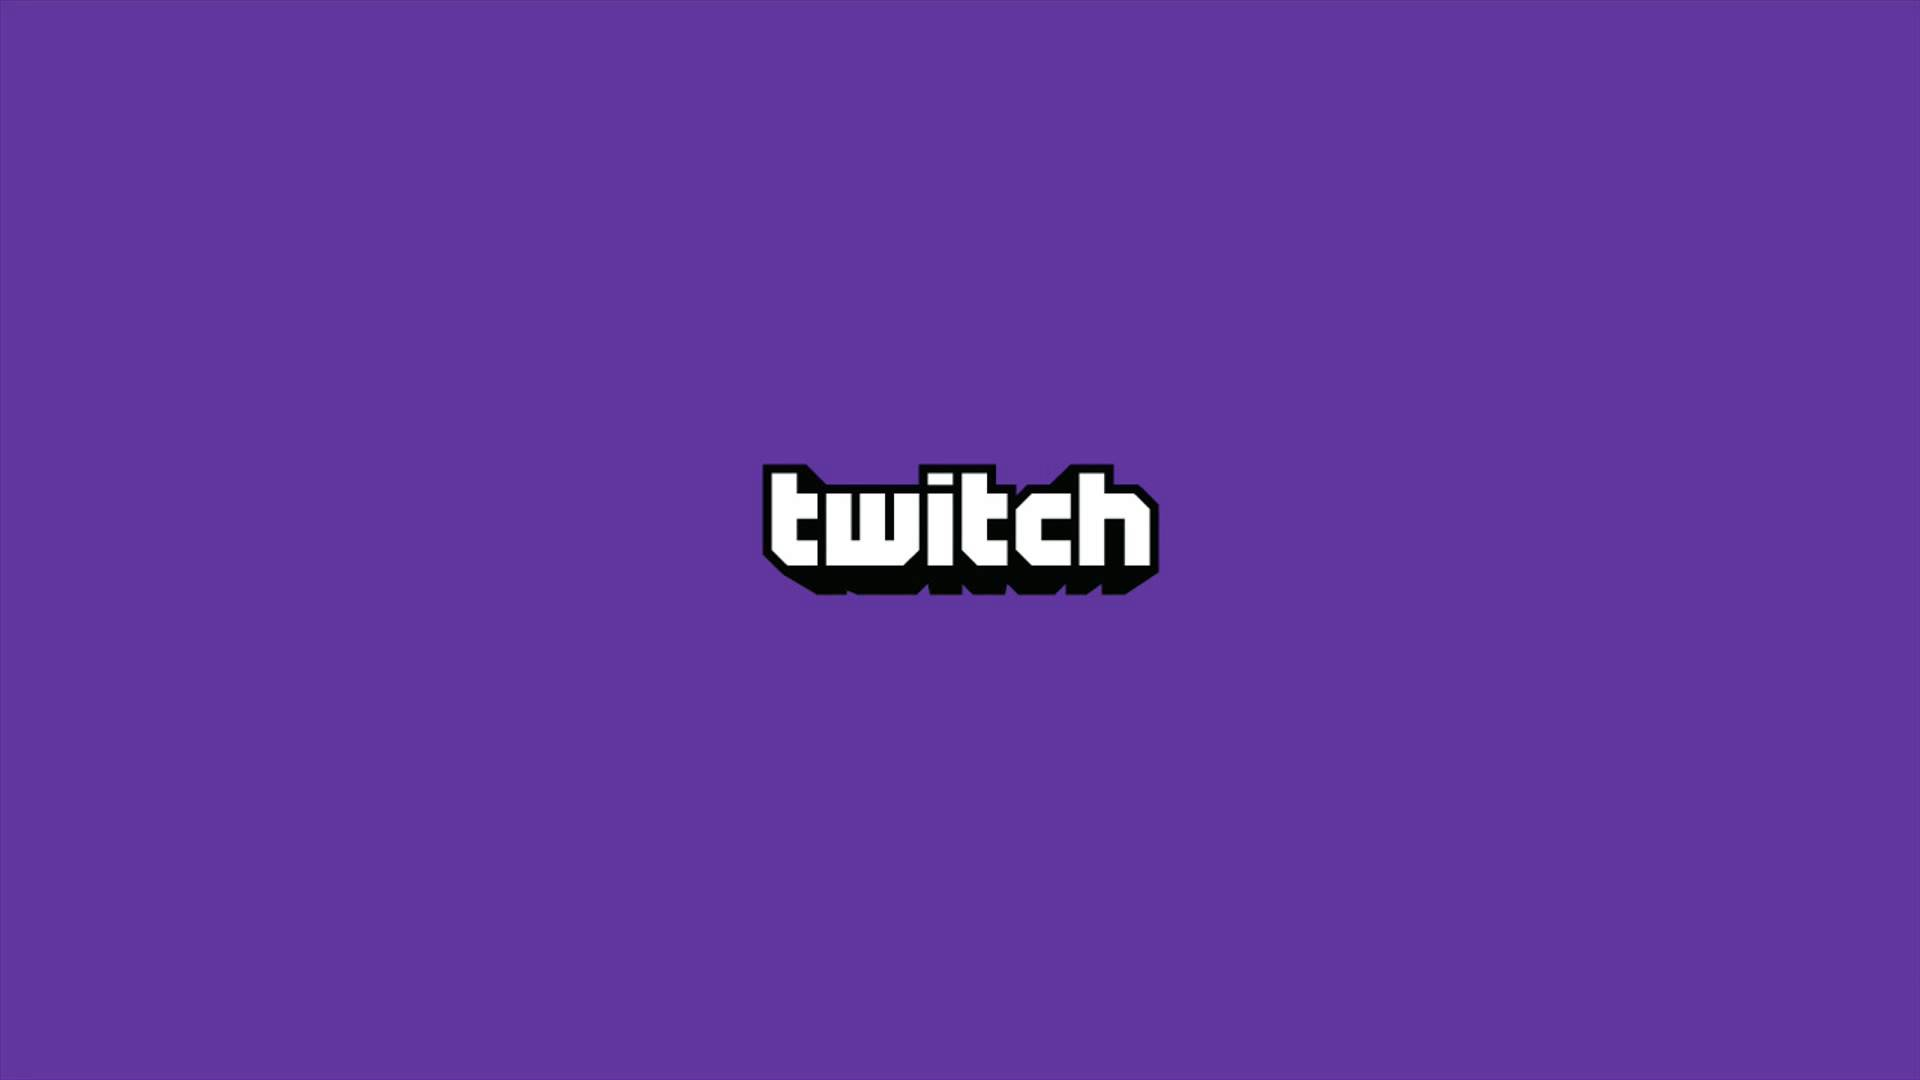 1920x1080 2016 Twitch HDQ Wallpapers, High Quality Backgrounds #25JOS